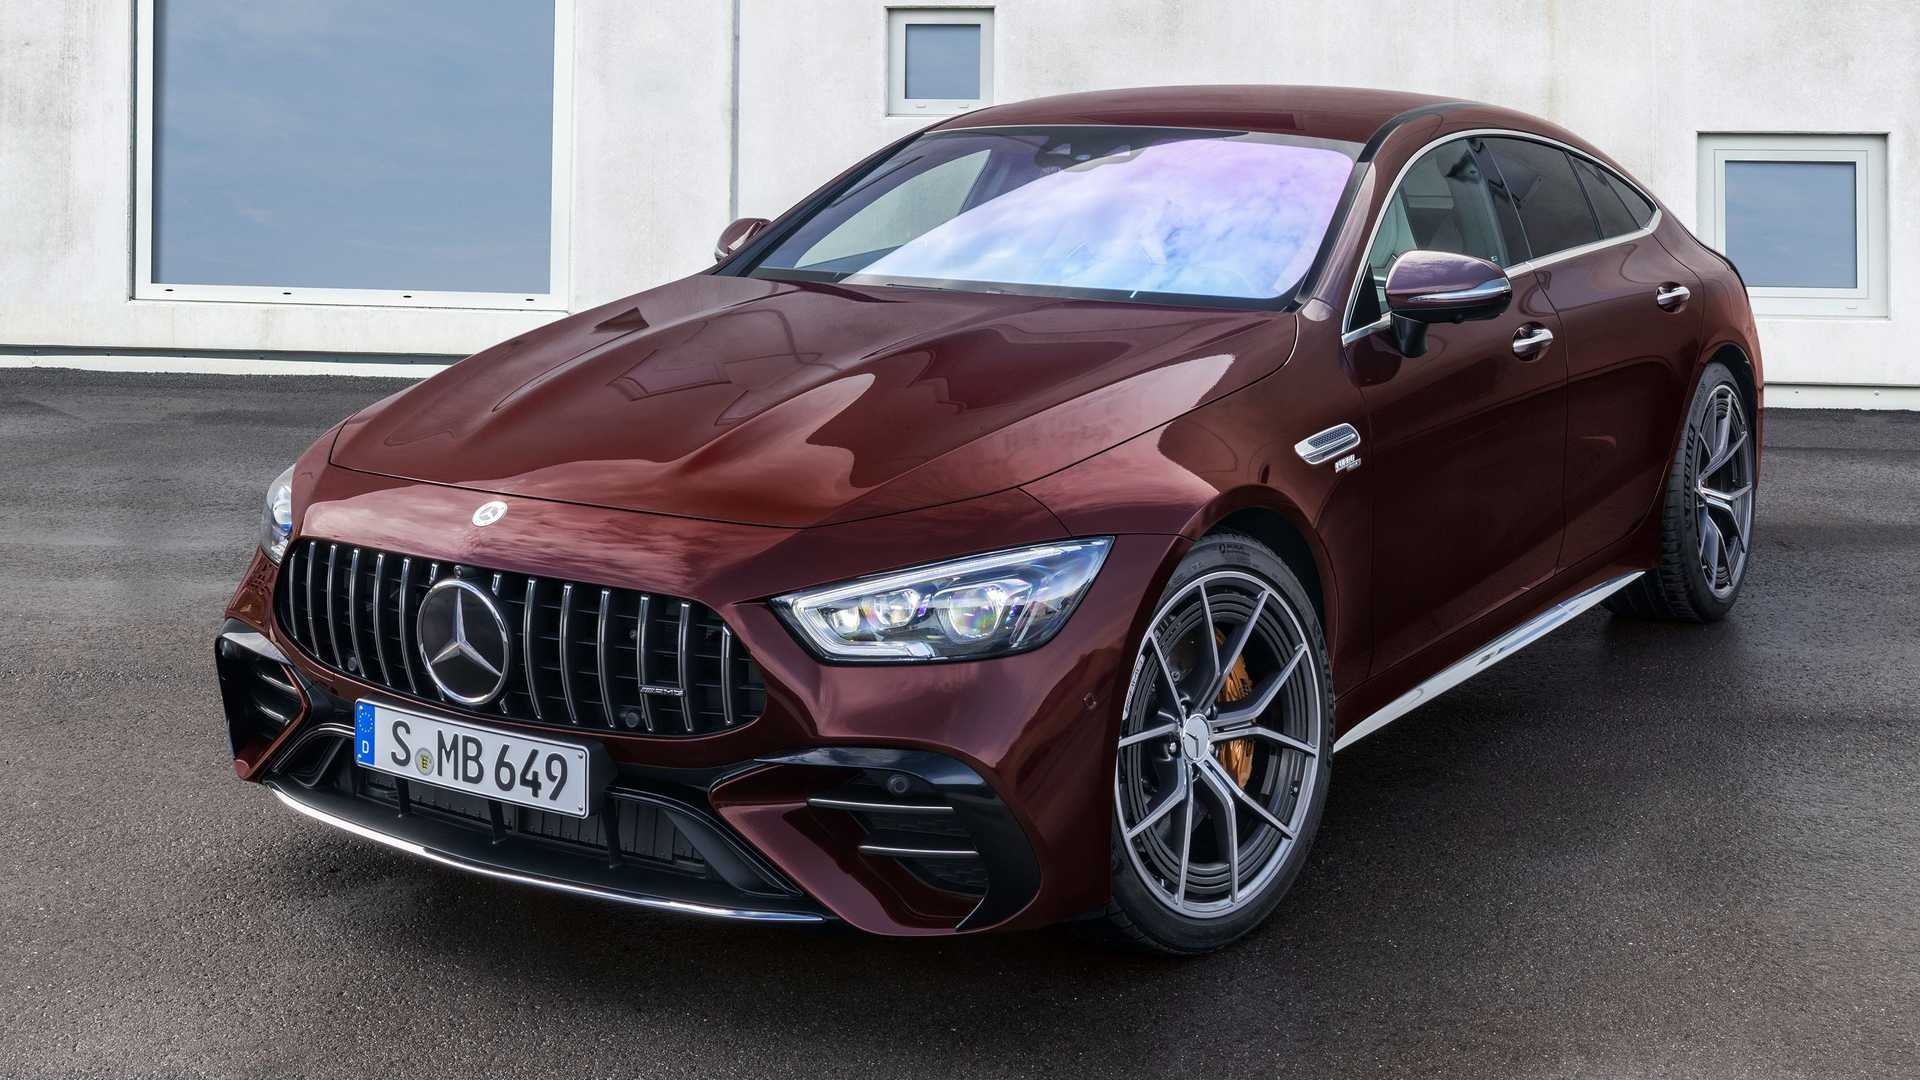 Mercedes-AMG has rolled out a refreshed version of its GT sedan, complete with an exclusive Manufaktur Edition. Sales in the USA start this fall.